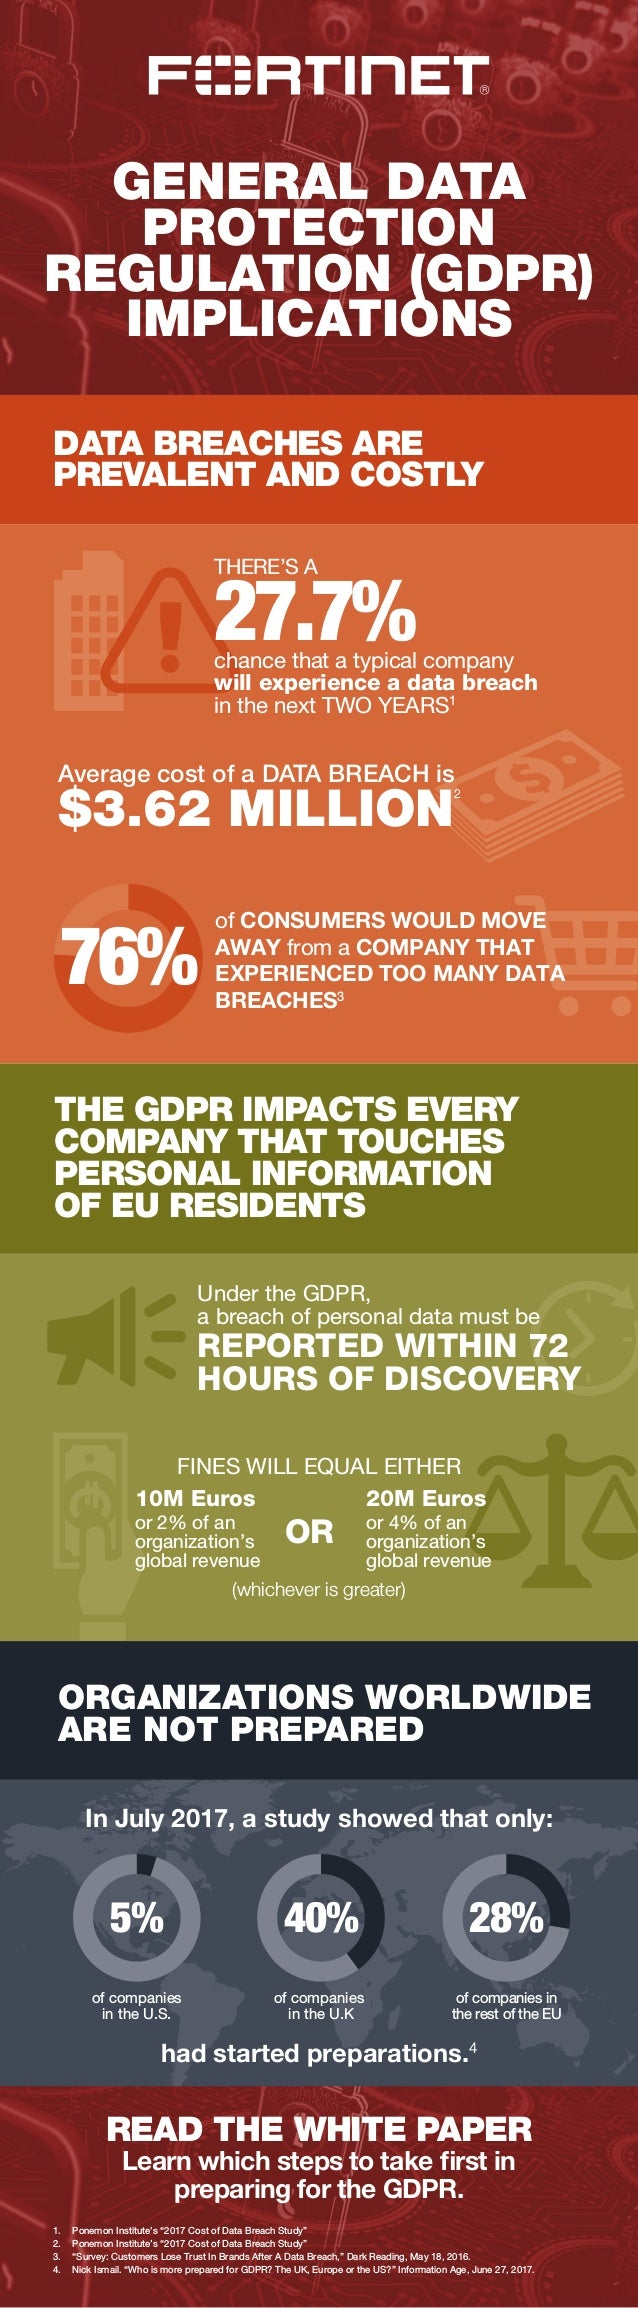 GENERAL DATA PROTECTION REGULATION (GDPR) IMPLICATIONS DATA BREACHES ARE PREVALENT AND COSTLY ORGANIZATIONS WORLDWIDE ARE ...